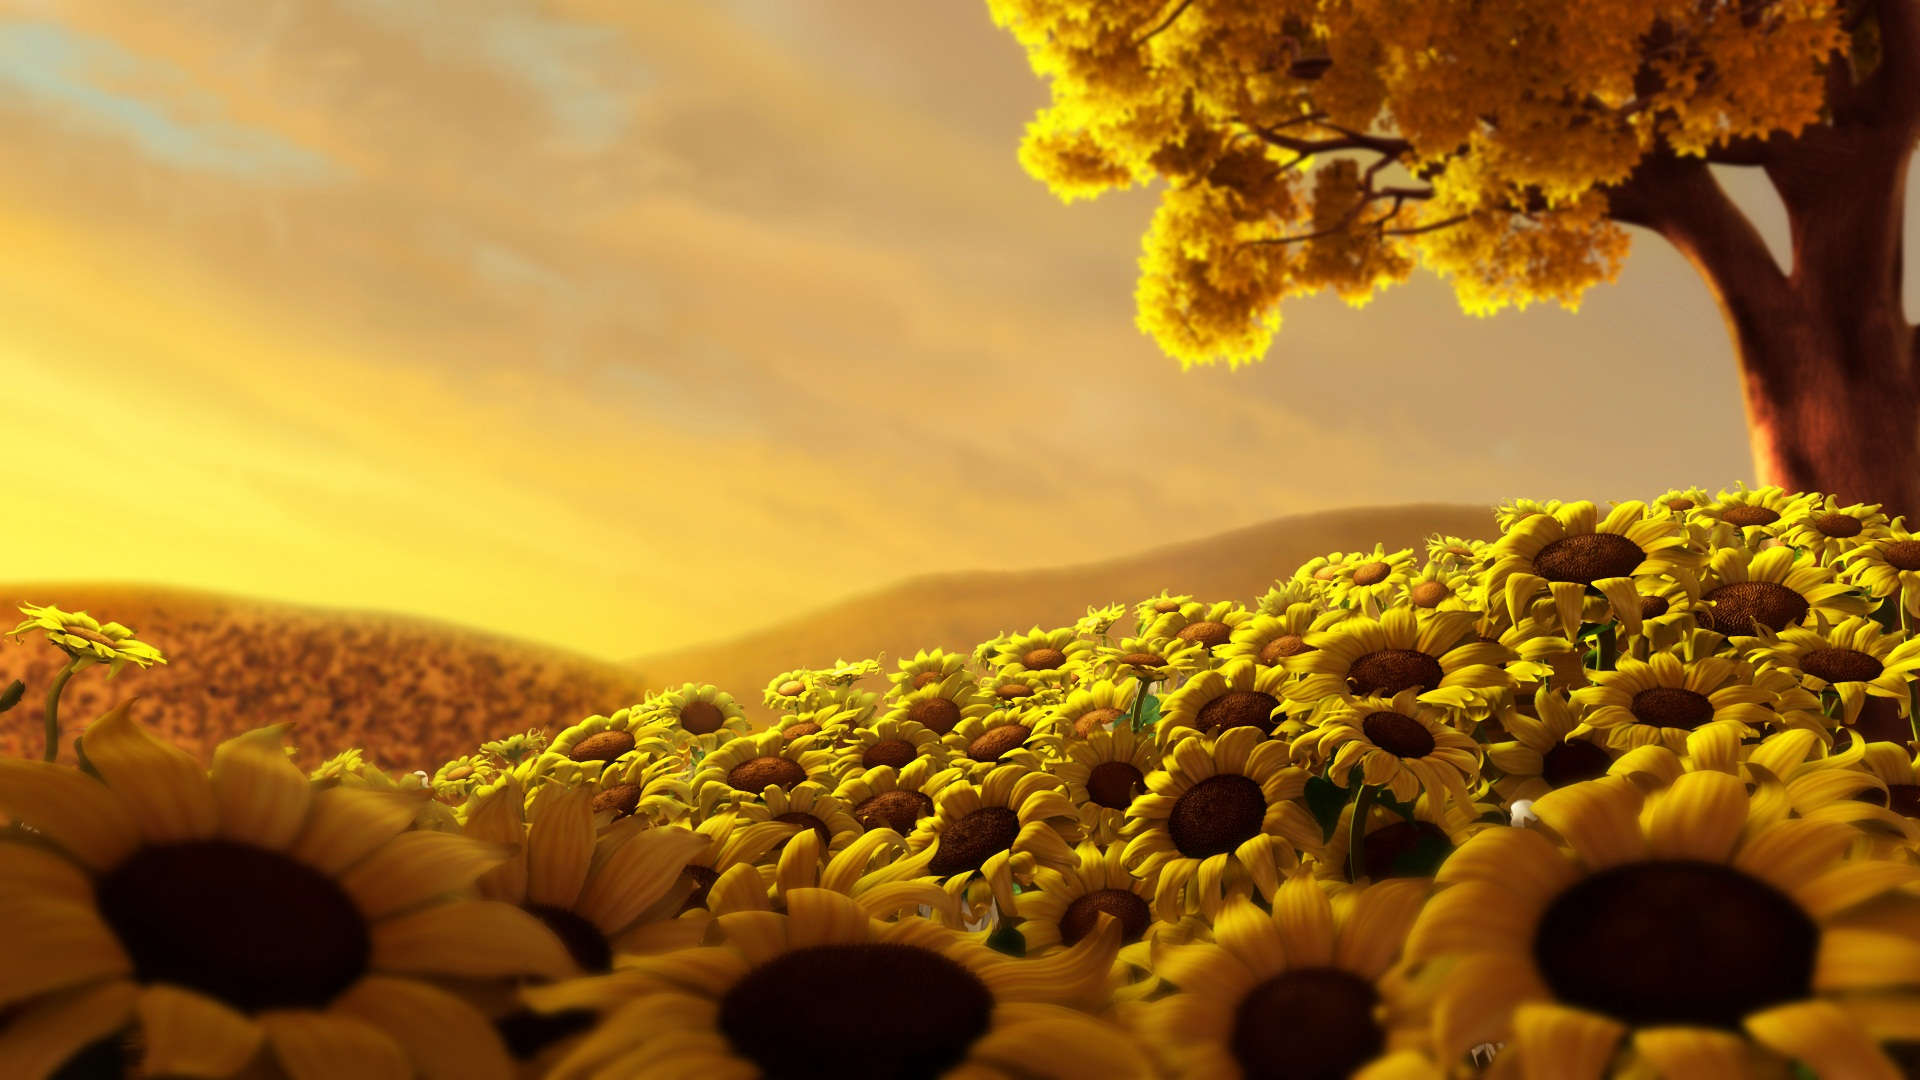 Sun Flower World HD